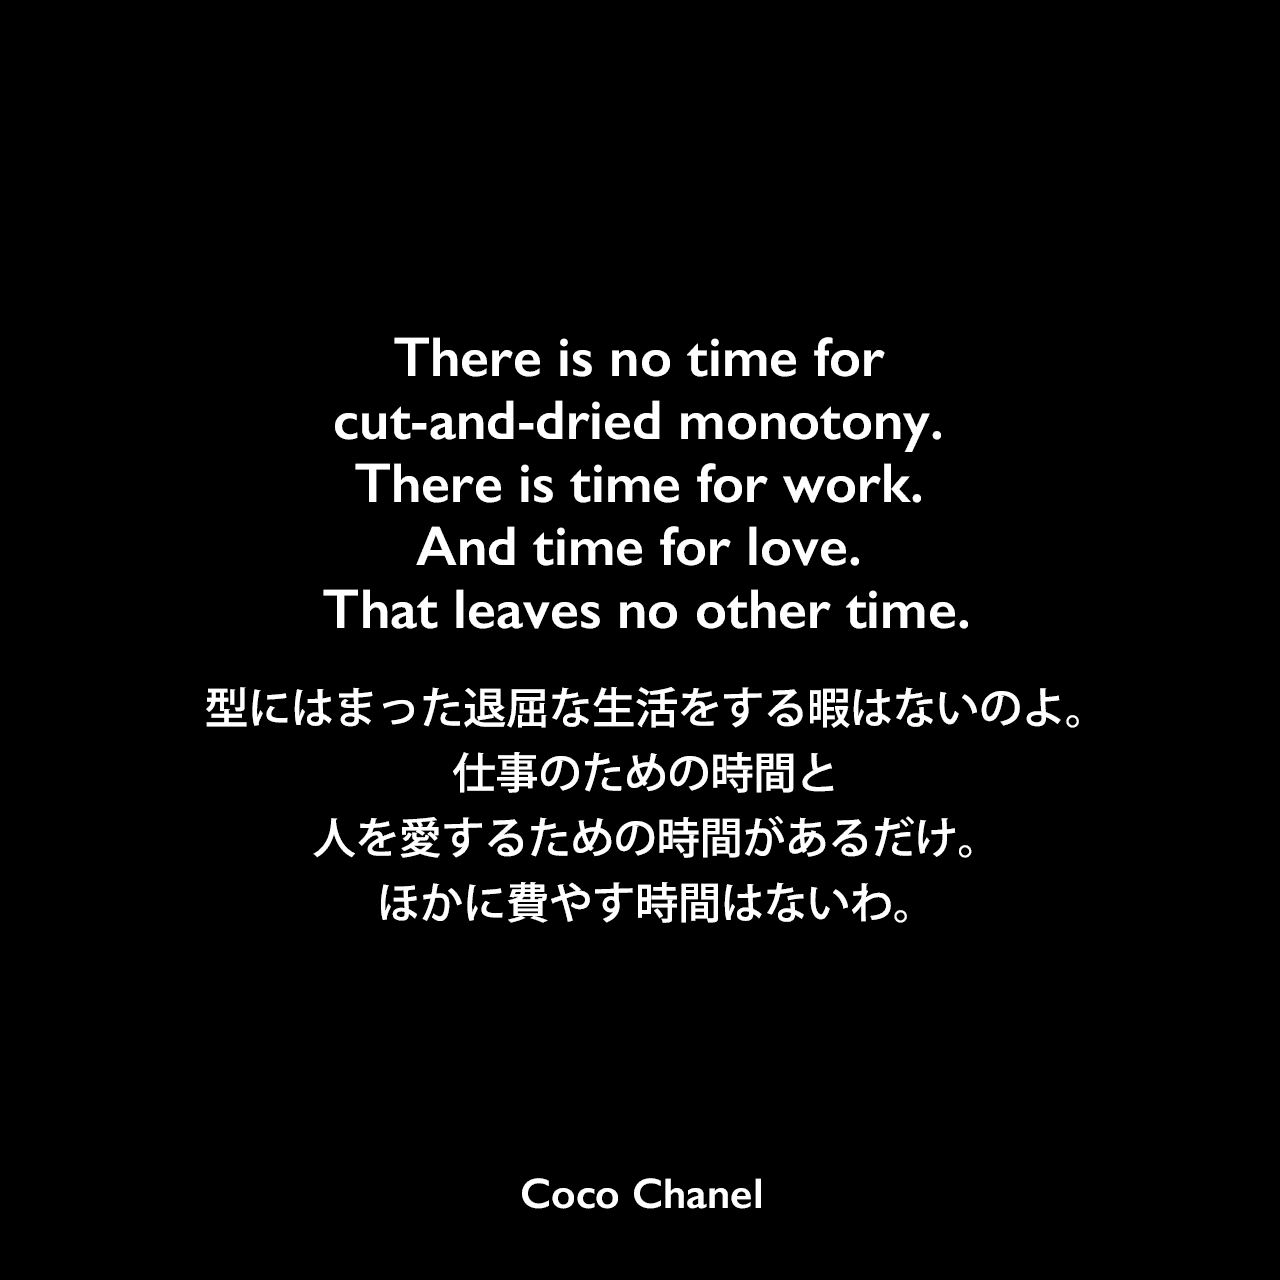 There is no time for cut-and-dried monotony. There is time for work. And time for love. That leaves no other time.型にはまった退屈な生活をする暇はないのよ。仕事のための時間と、人を愛するための時間があるだけ。ほかに費やす時間はないわ。Coco Chanel